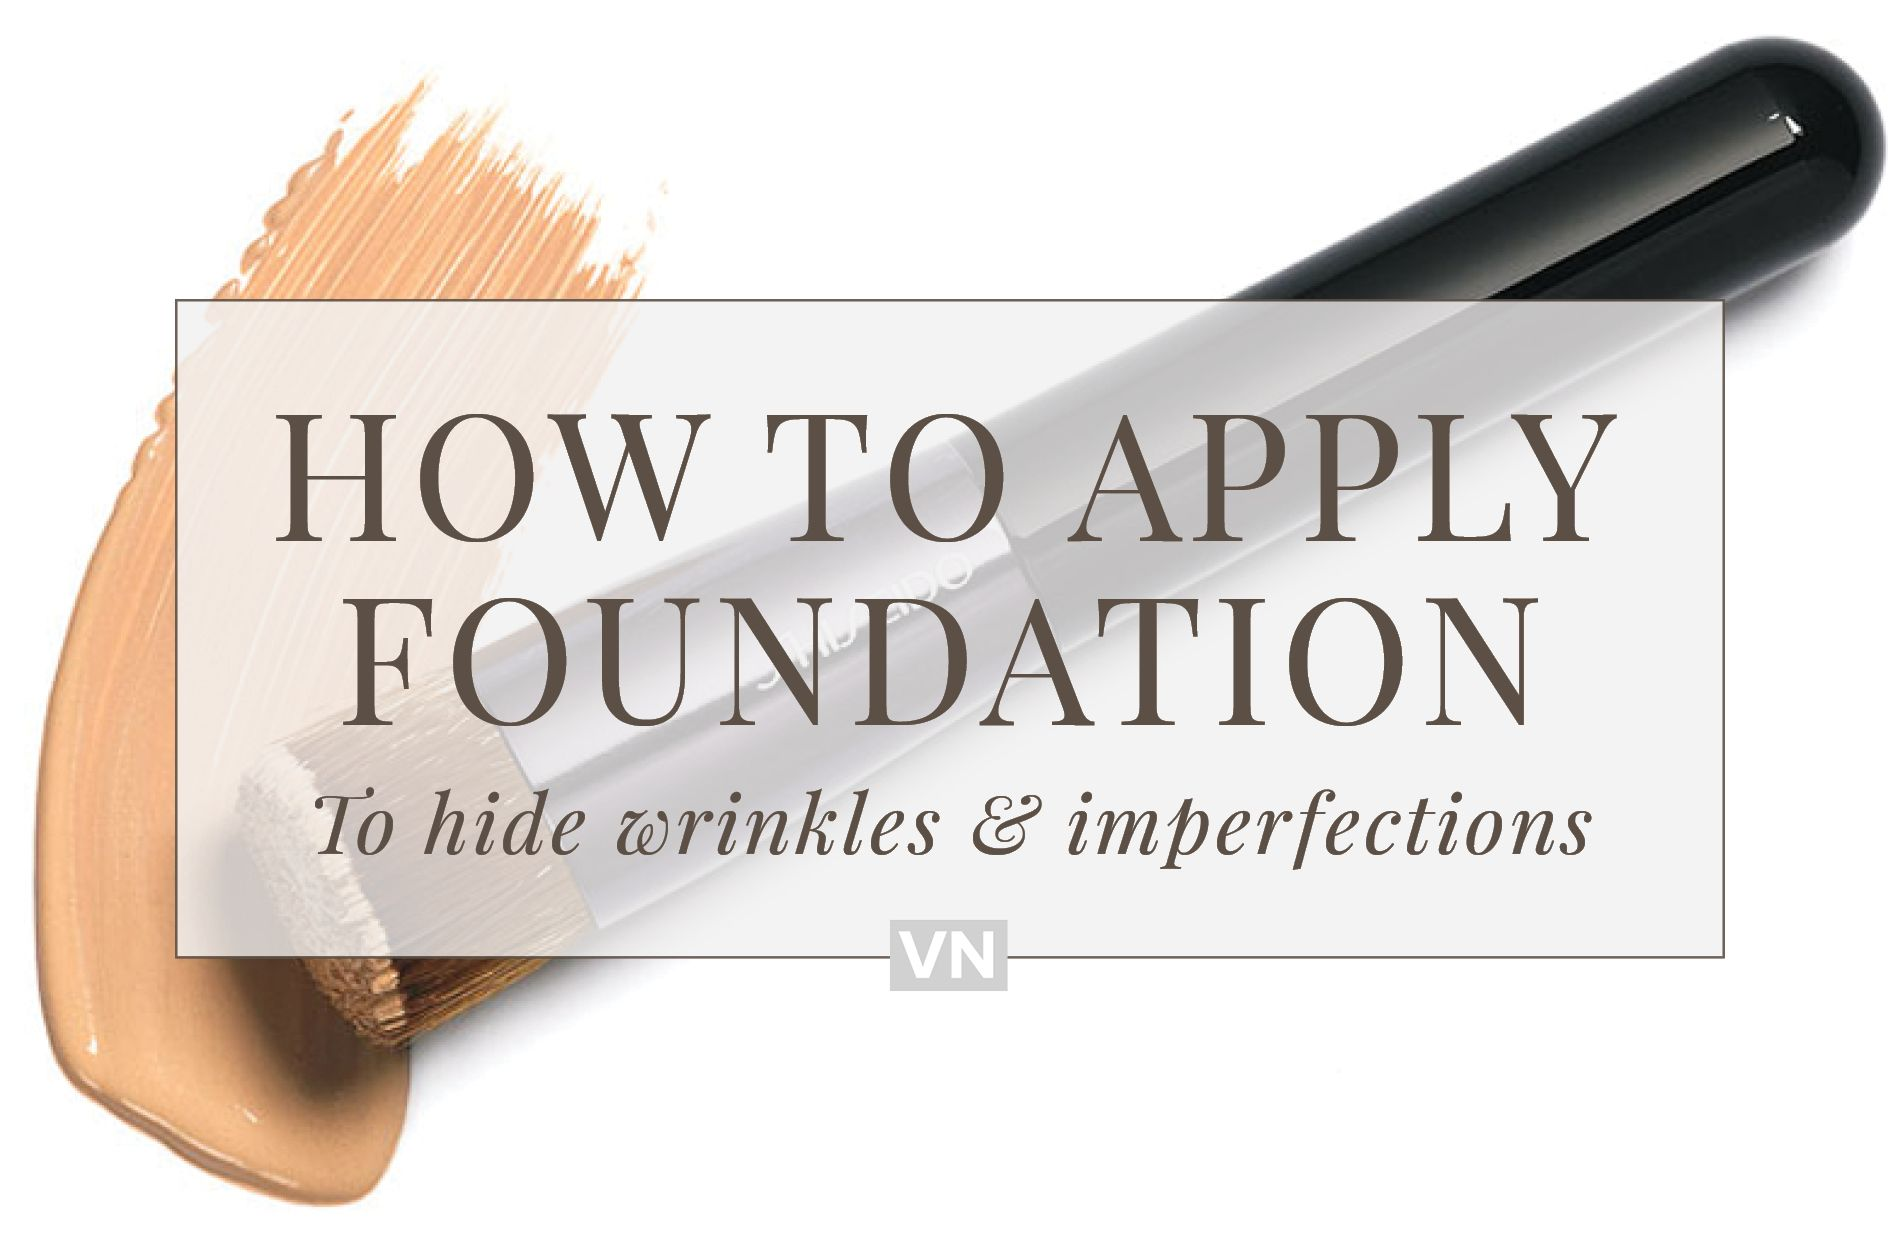 How to apply foundation to hide wrinkles + imperfections